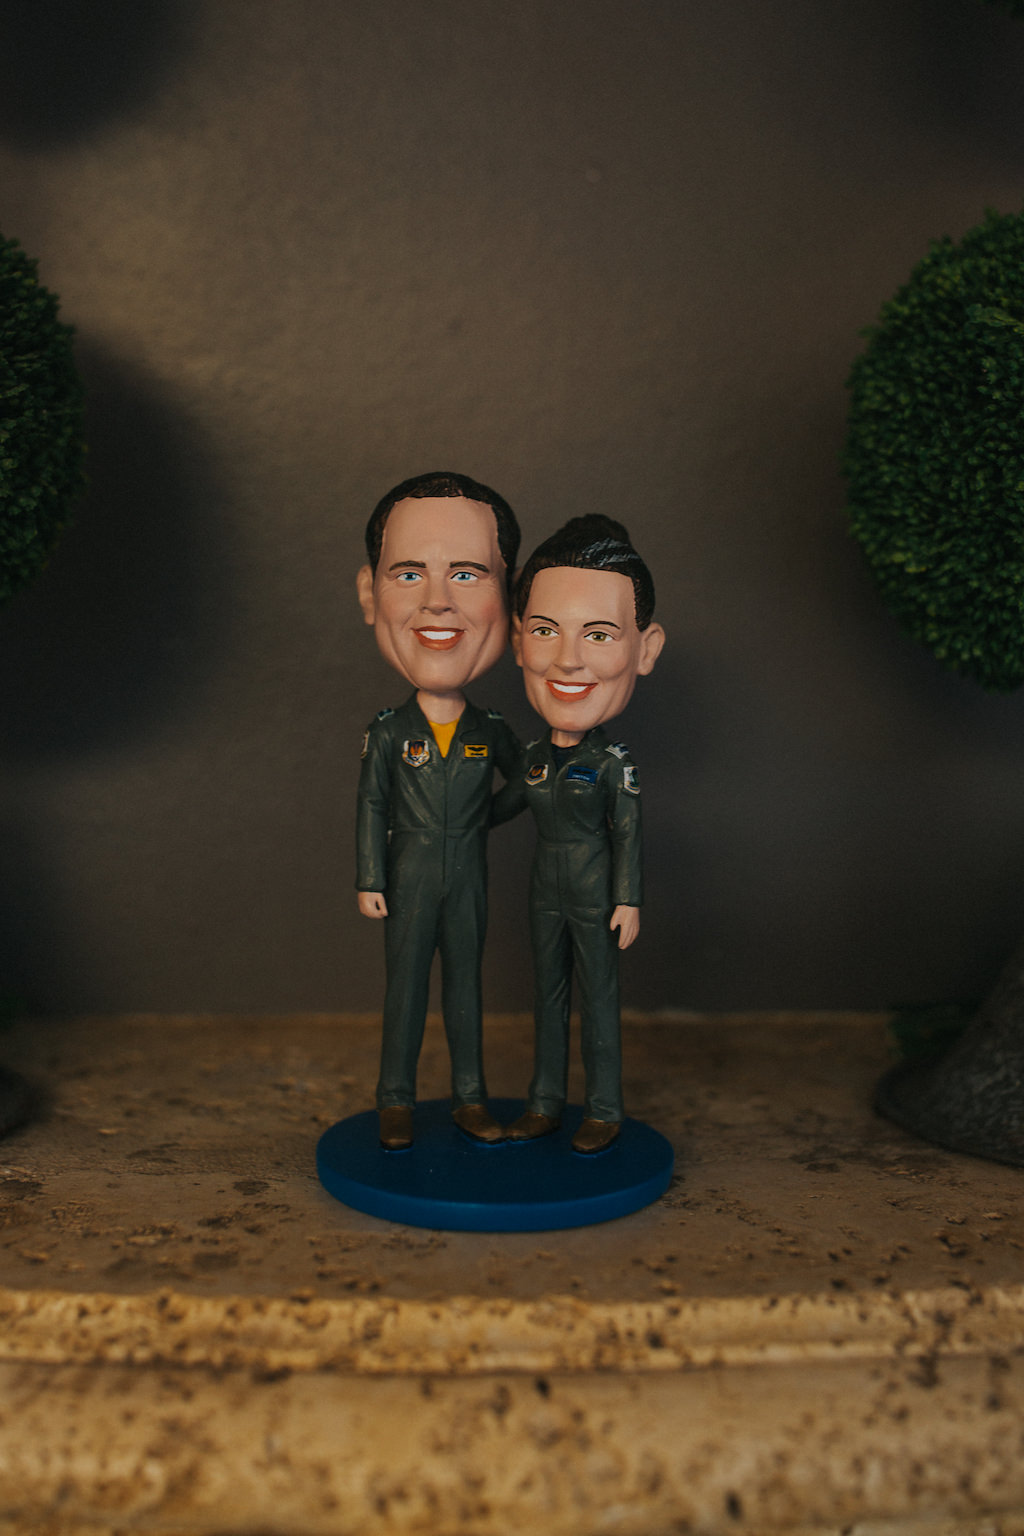 Custom Wedding Bobbleheads of Bride and Groom in Air Force Military Uniform